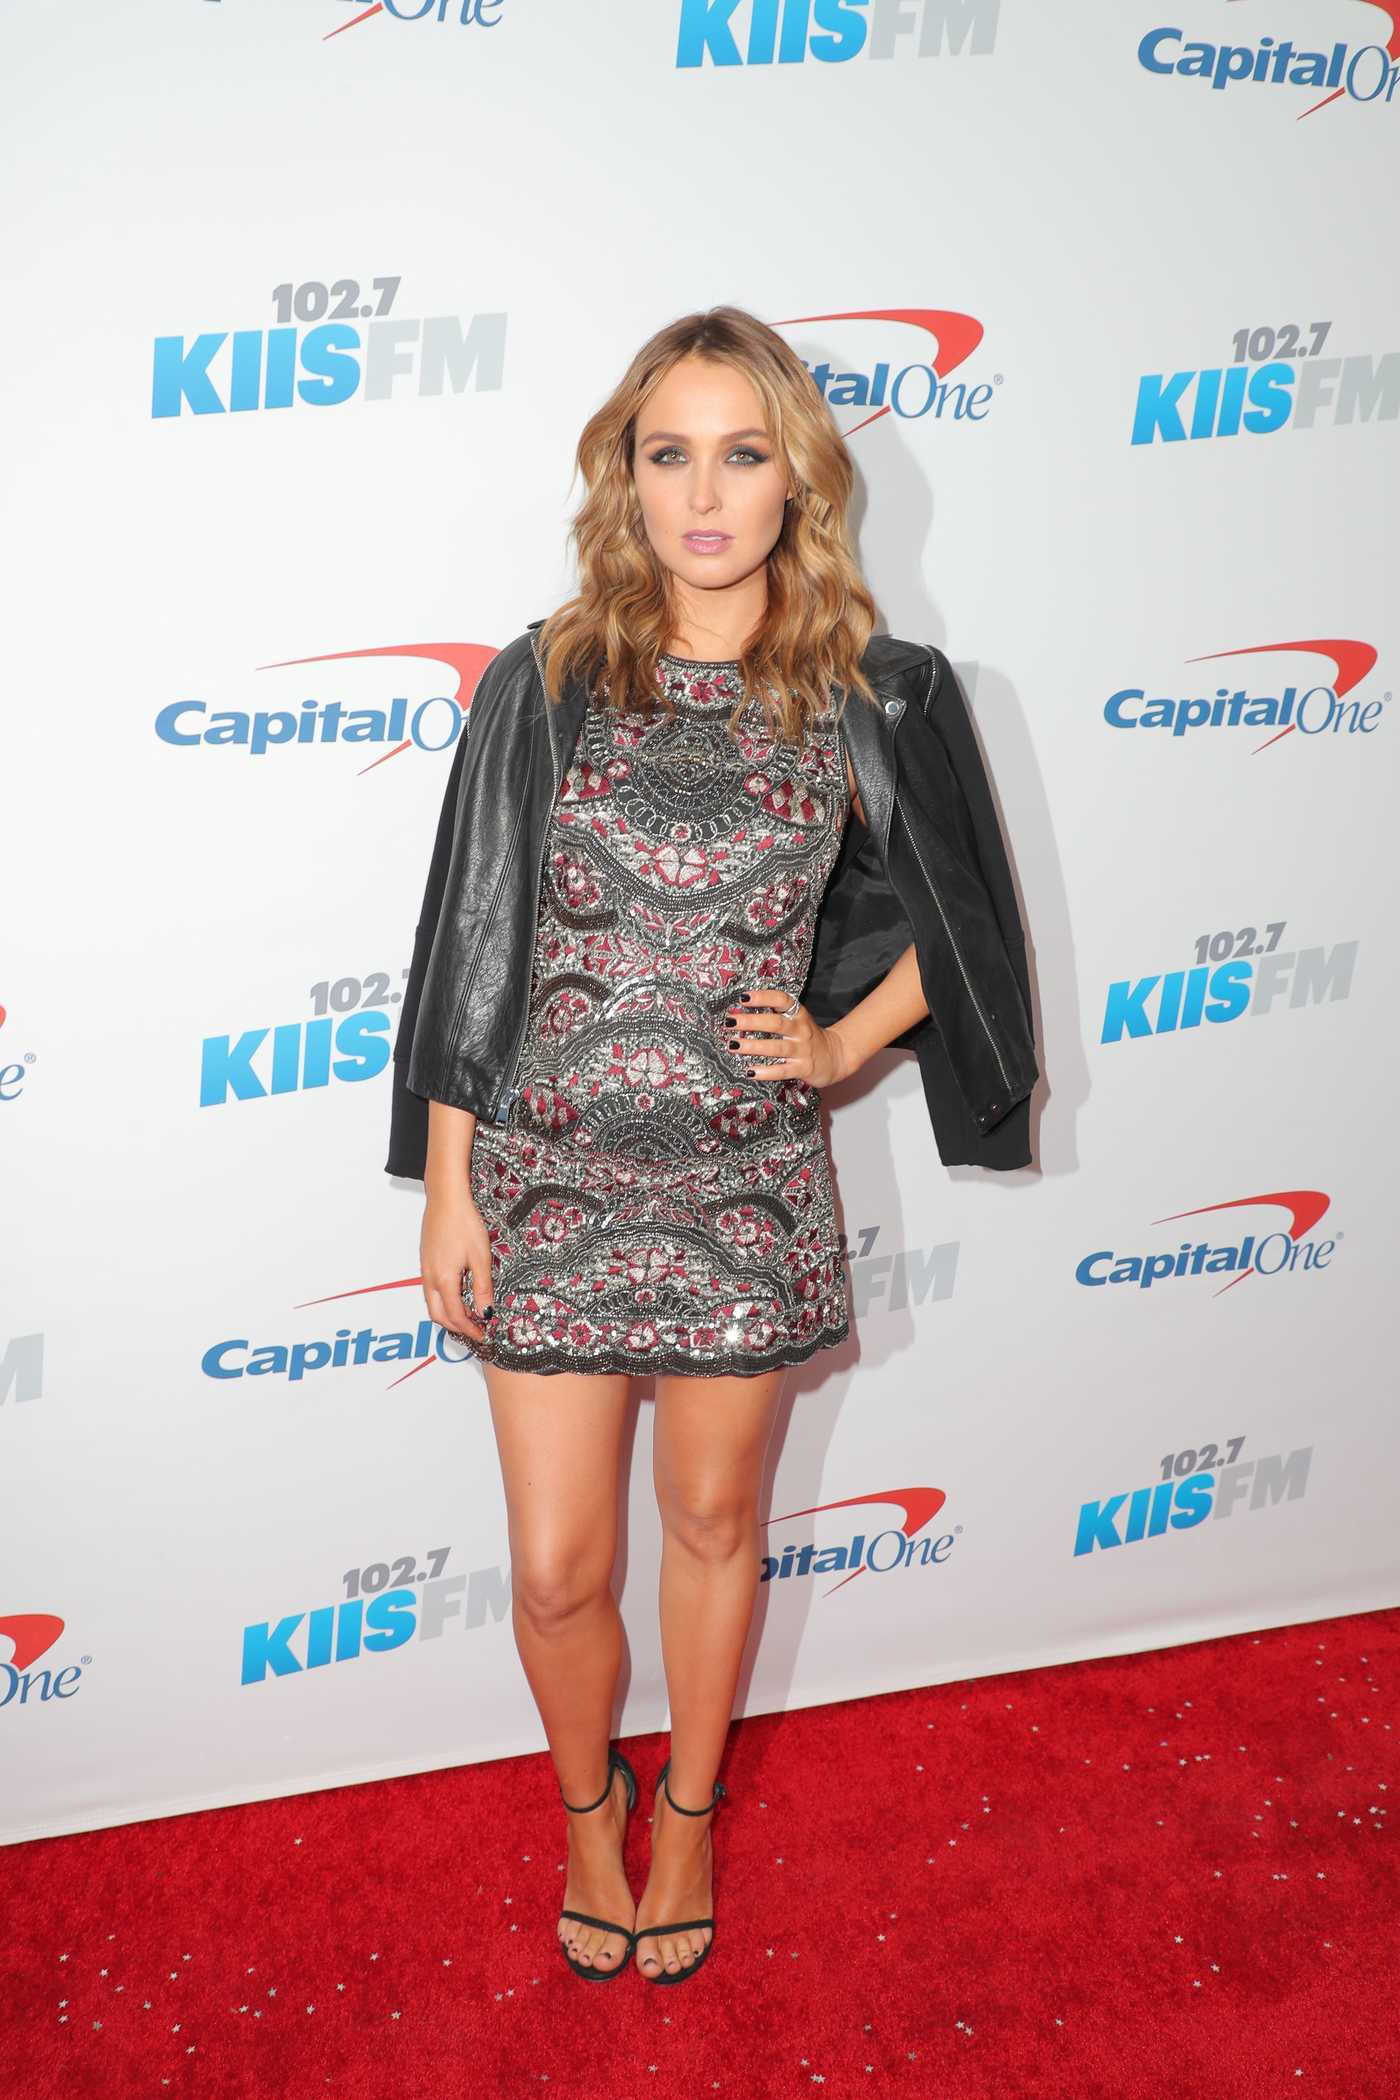 Camilla Luddington at iHeartRadio Jingle Ball at the Staples Center in Los Angeles 12/02/2016